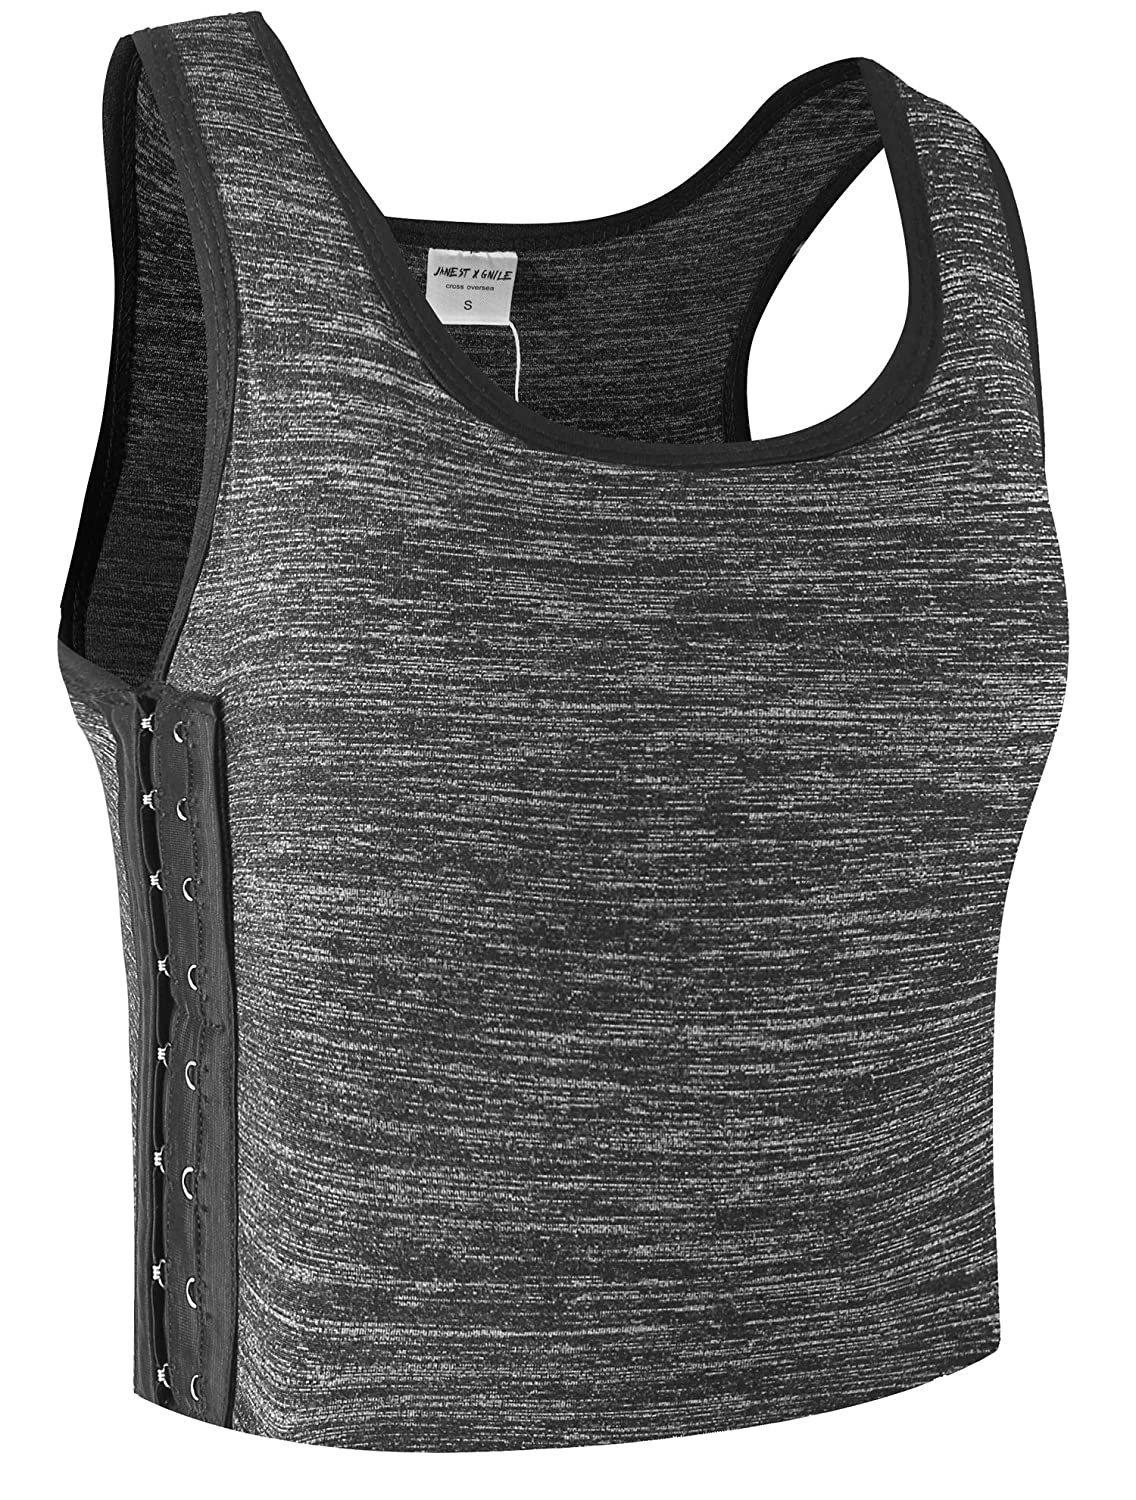 Anboer Women Tomboy Lesbian Breathable Cotton Elastic Band Colors Chest Binder Tank Top (M-6XL)